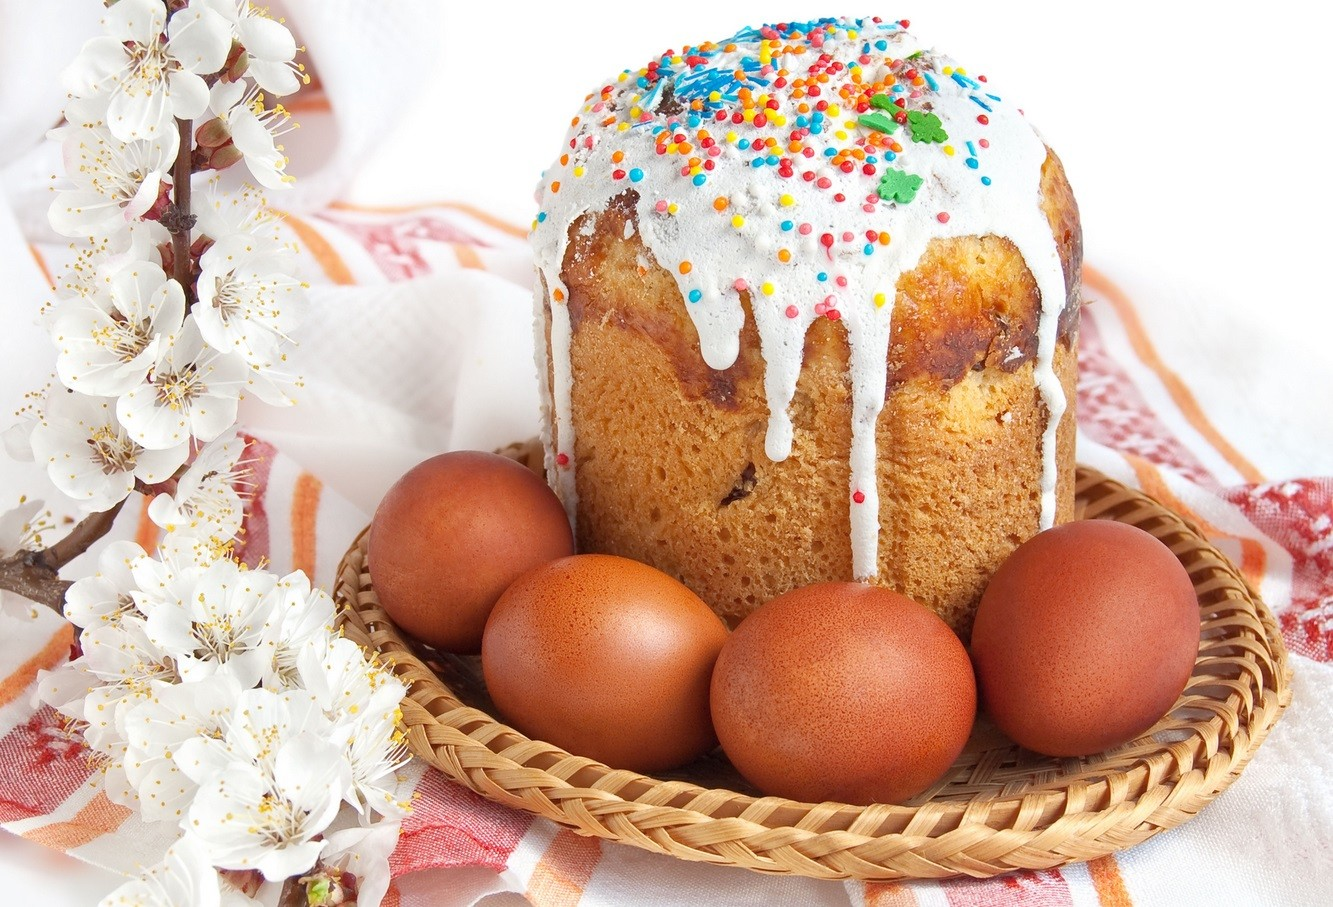 The most delicious Easter cake